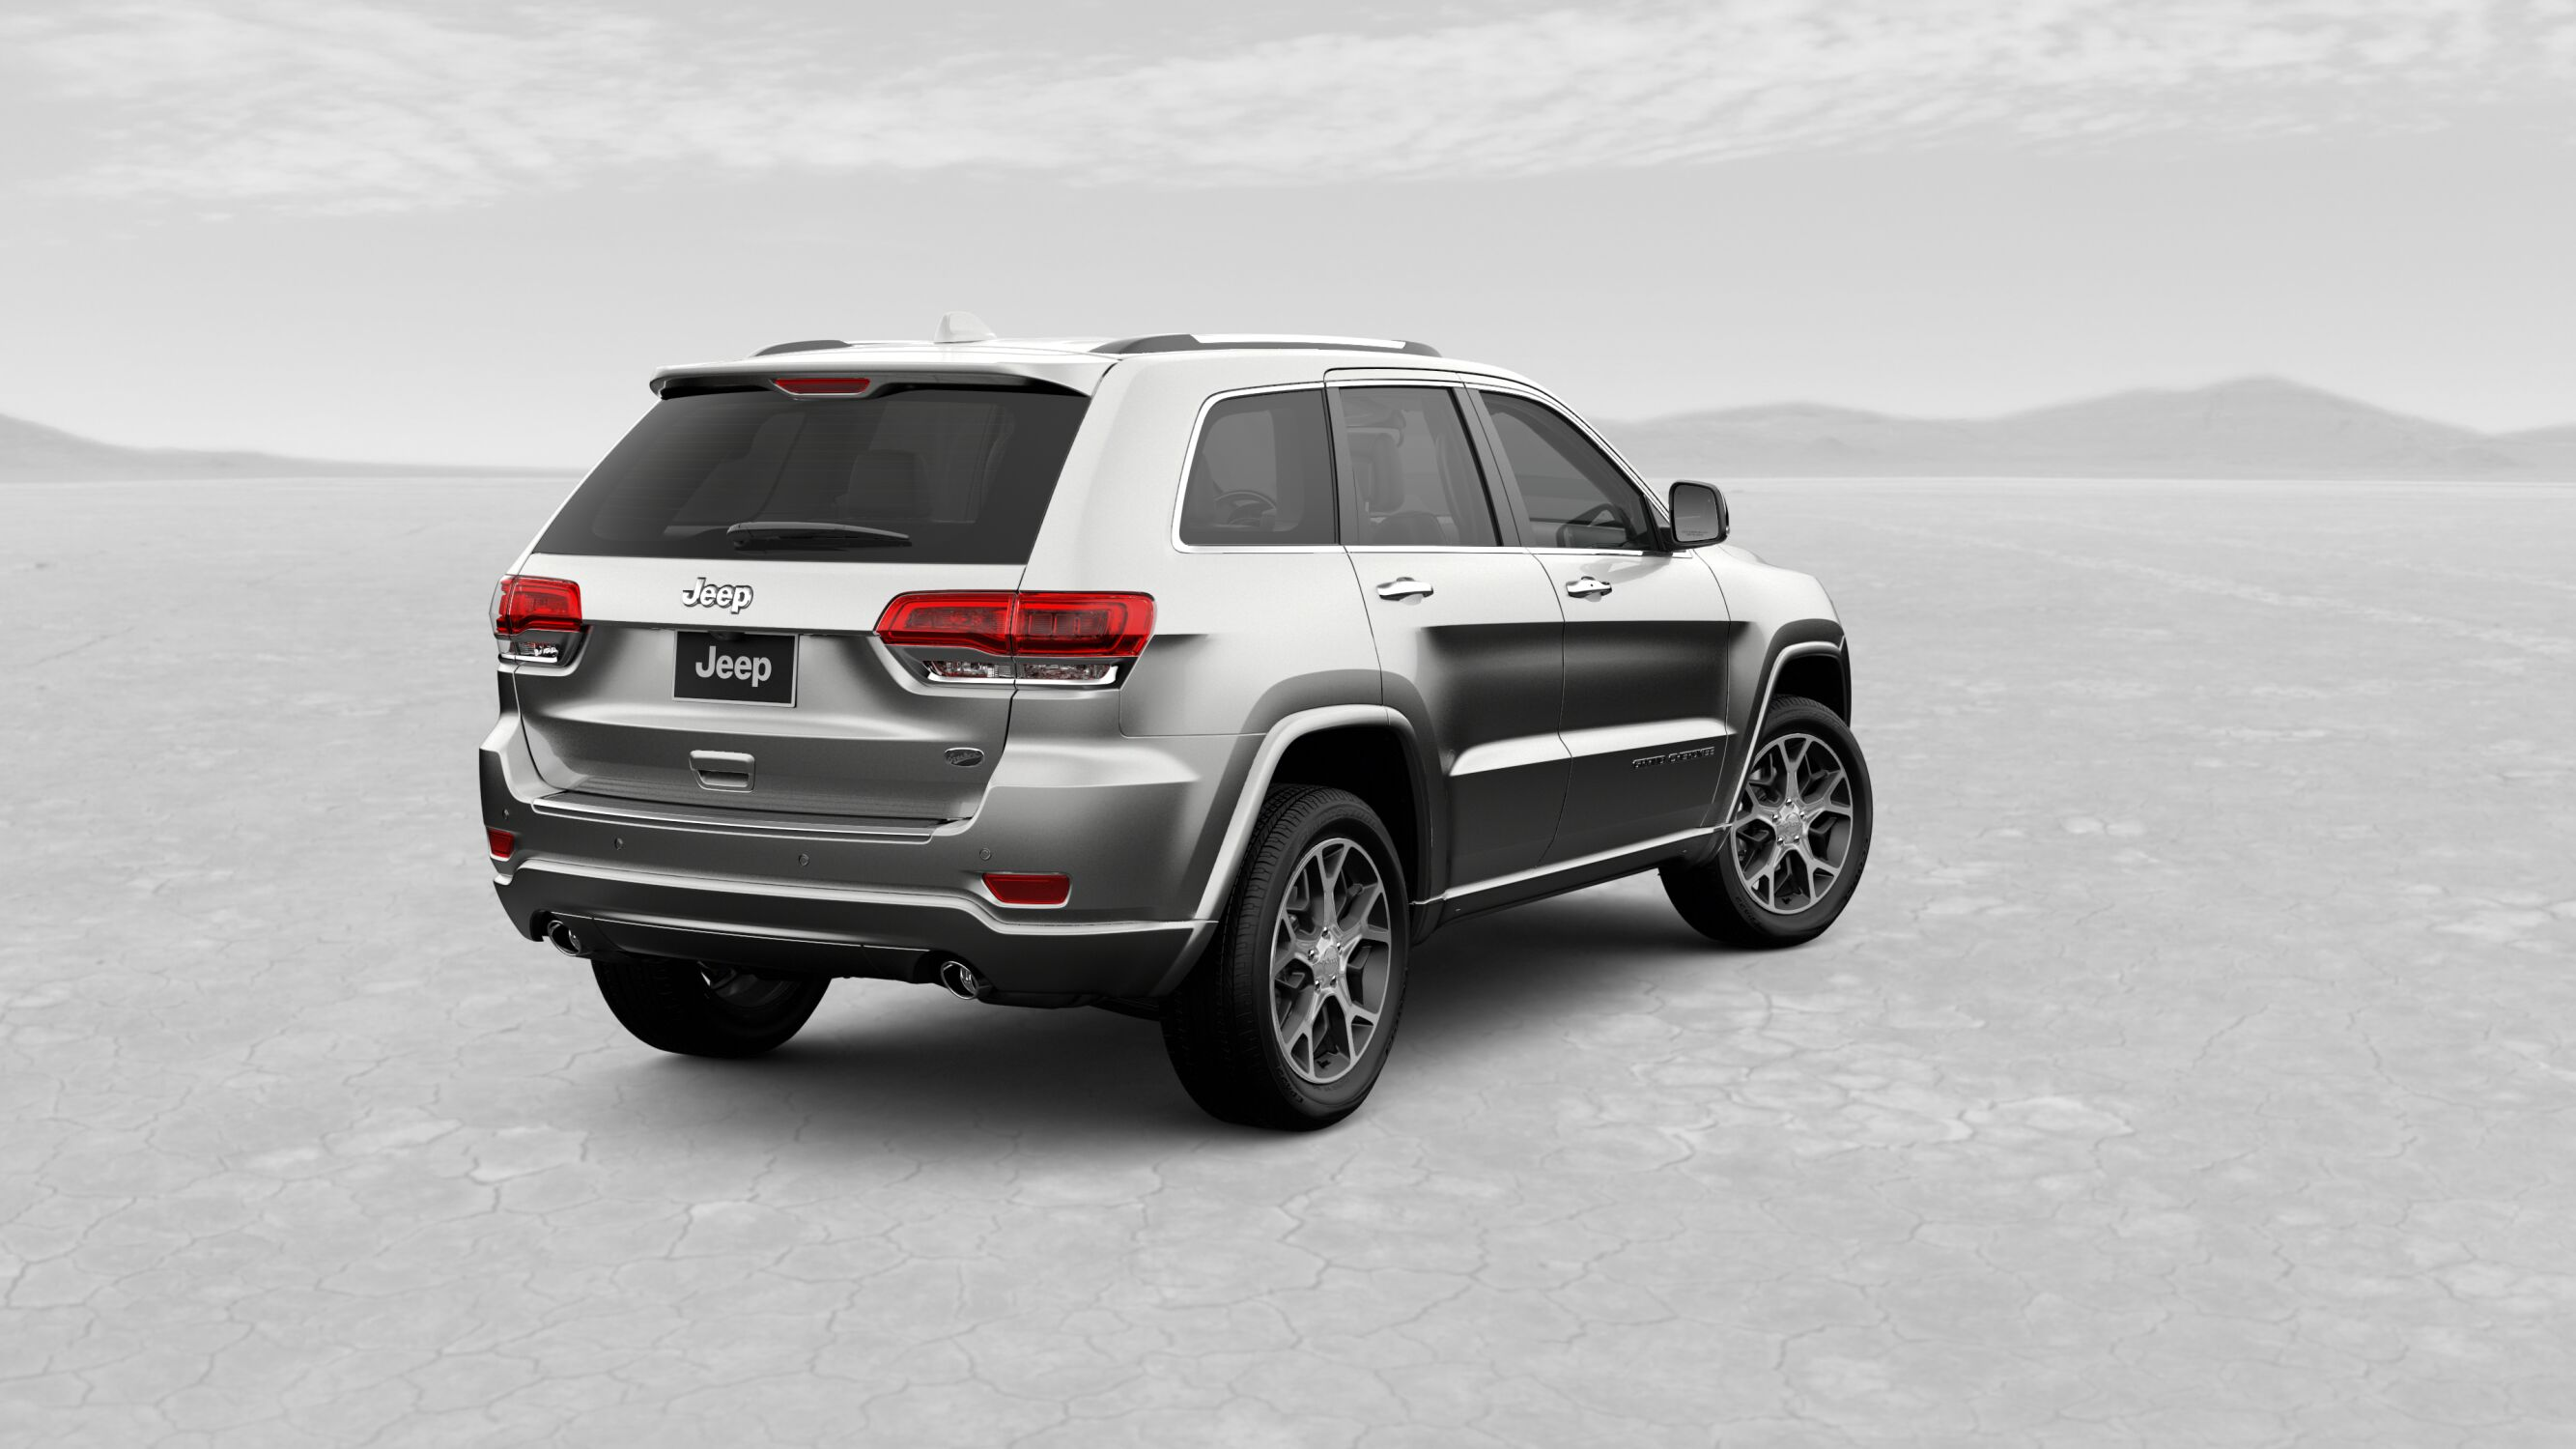 2019 Jeep Grand Cherokee Overland Ivory White Exterior Rear View